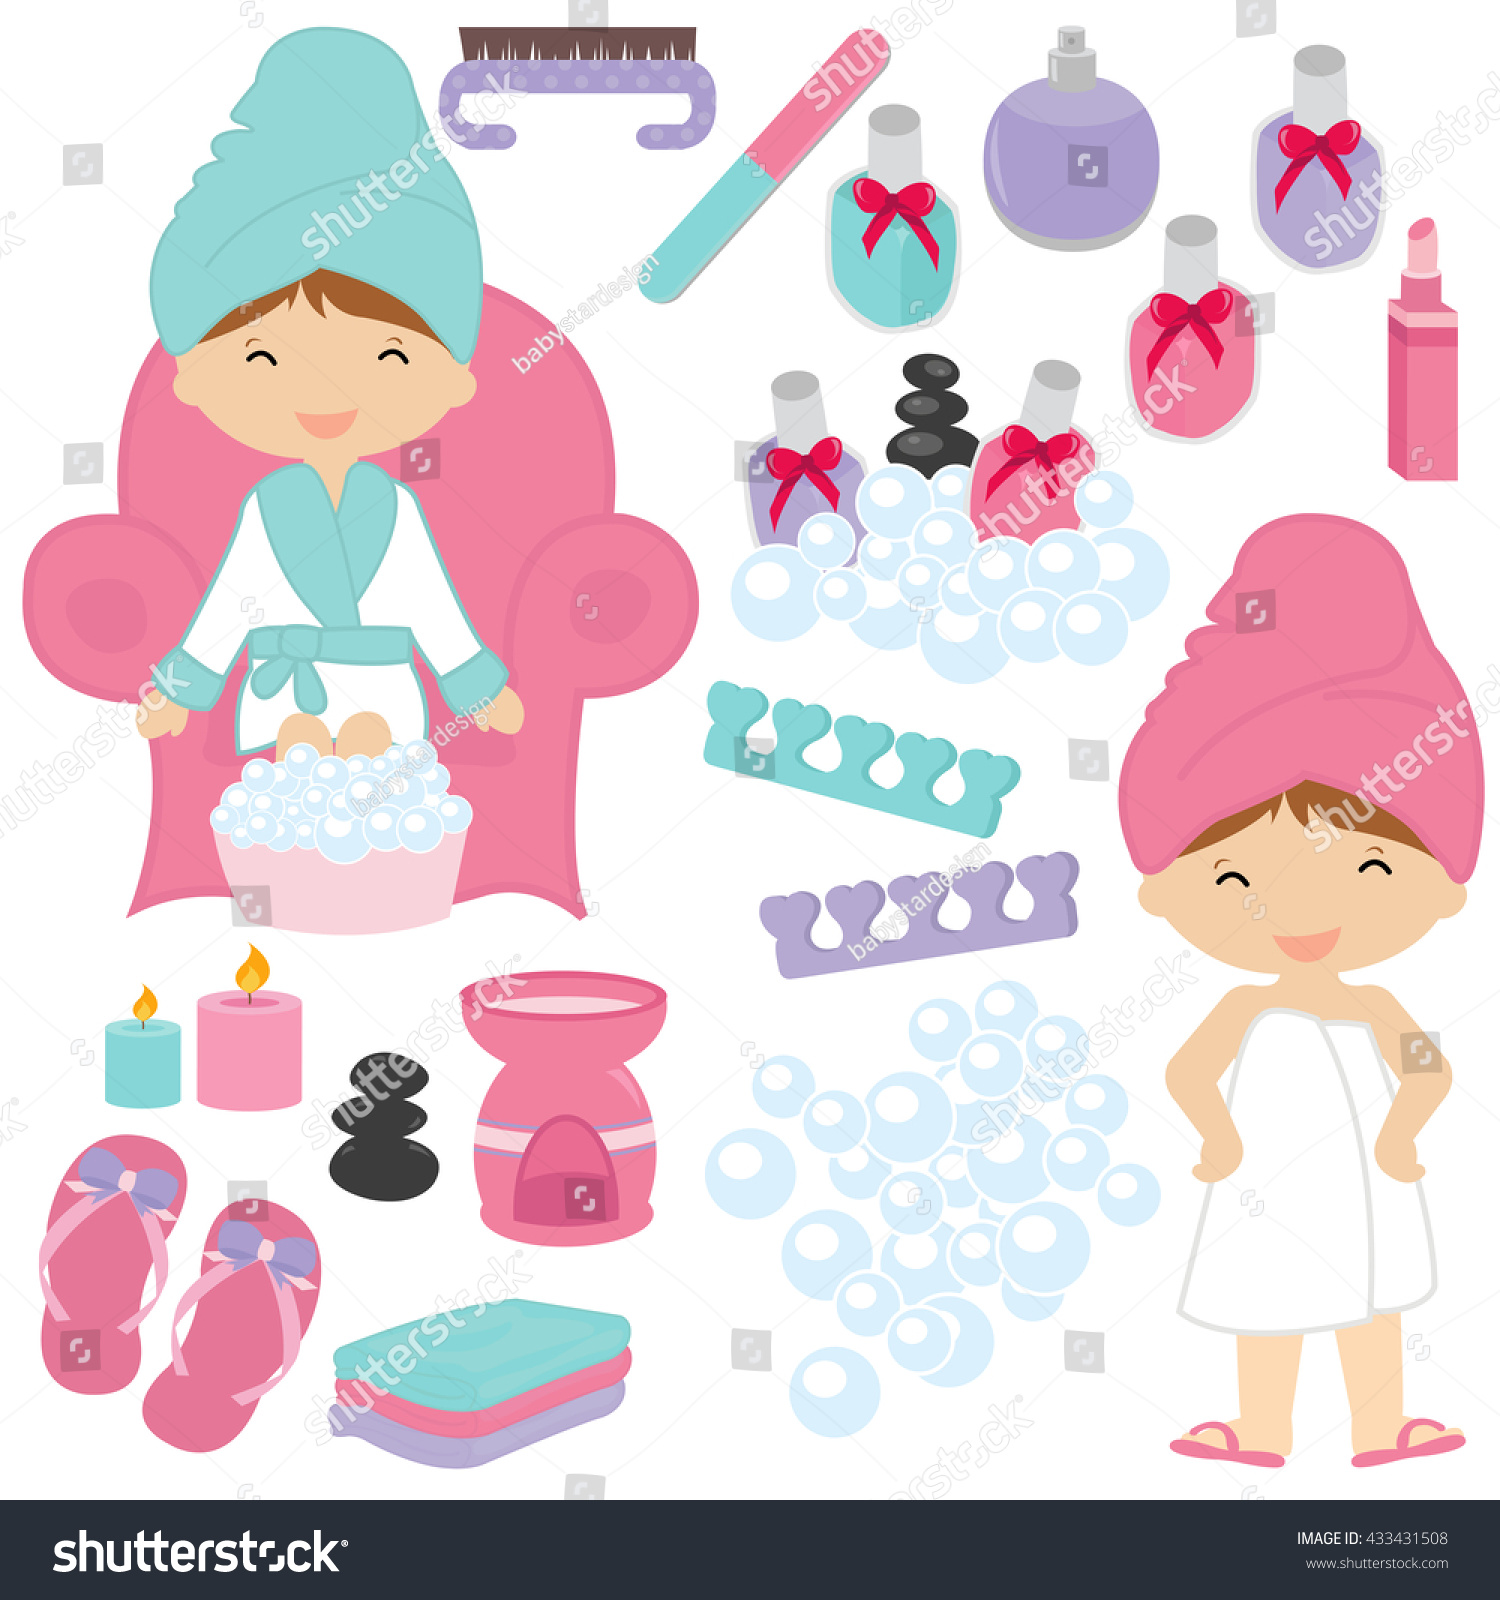 Set Of Colorful Spa Logo Vectors: Illustration Little Girls Being Pampered Spa Stock Vector